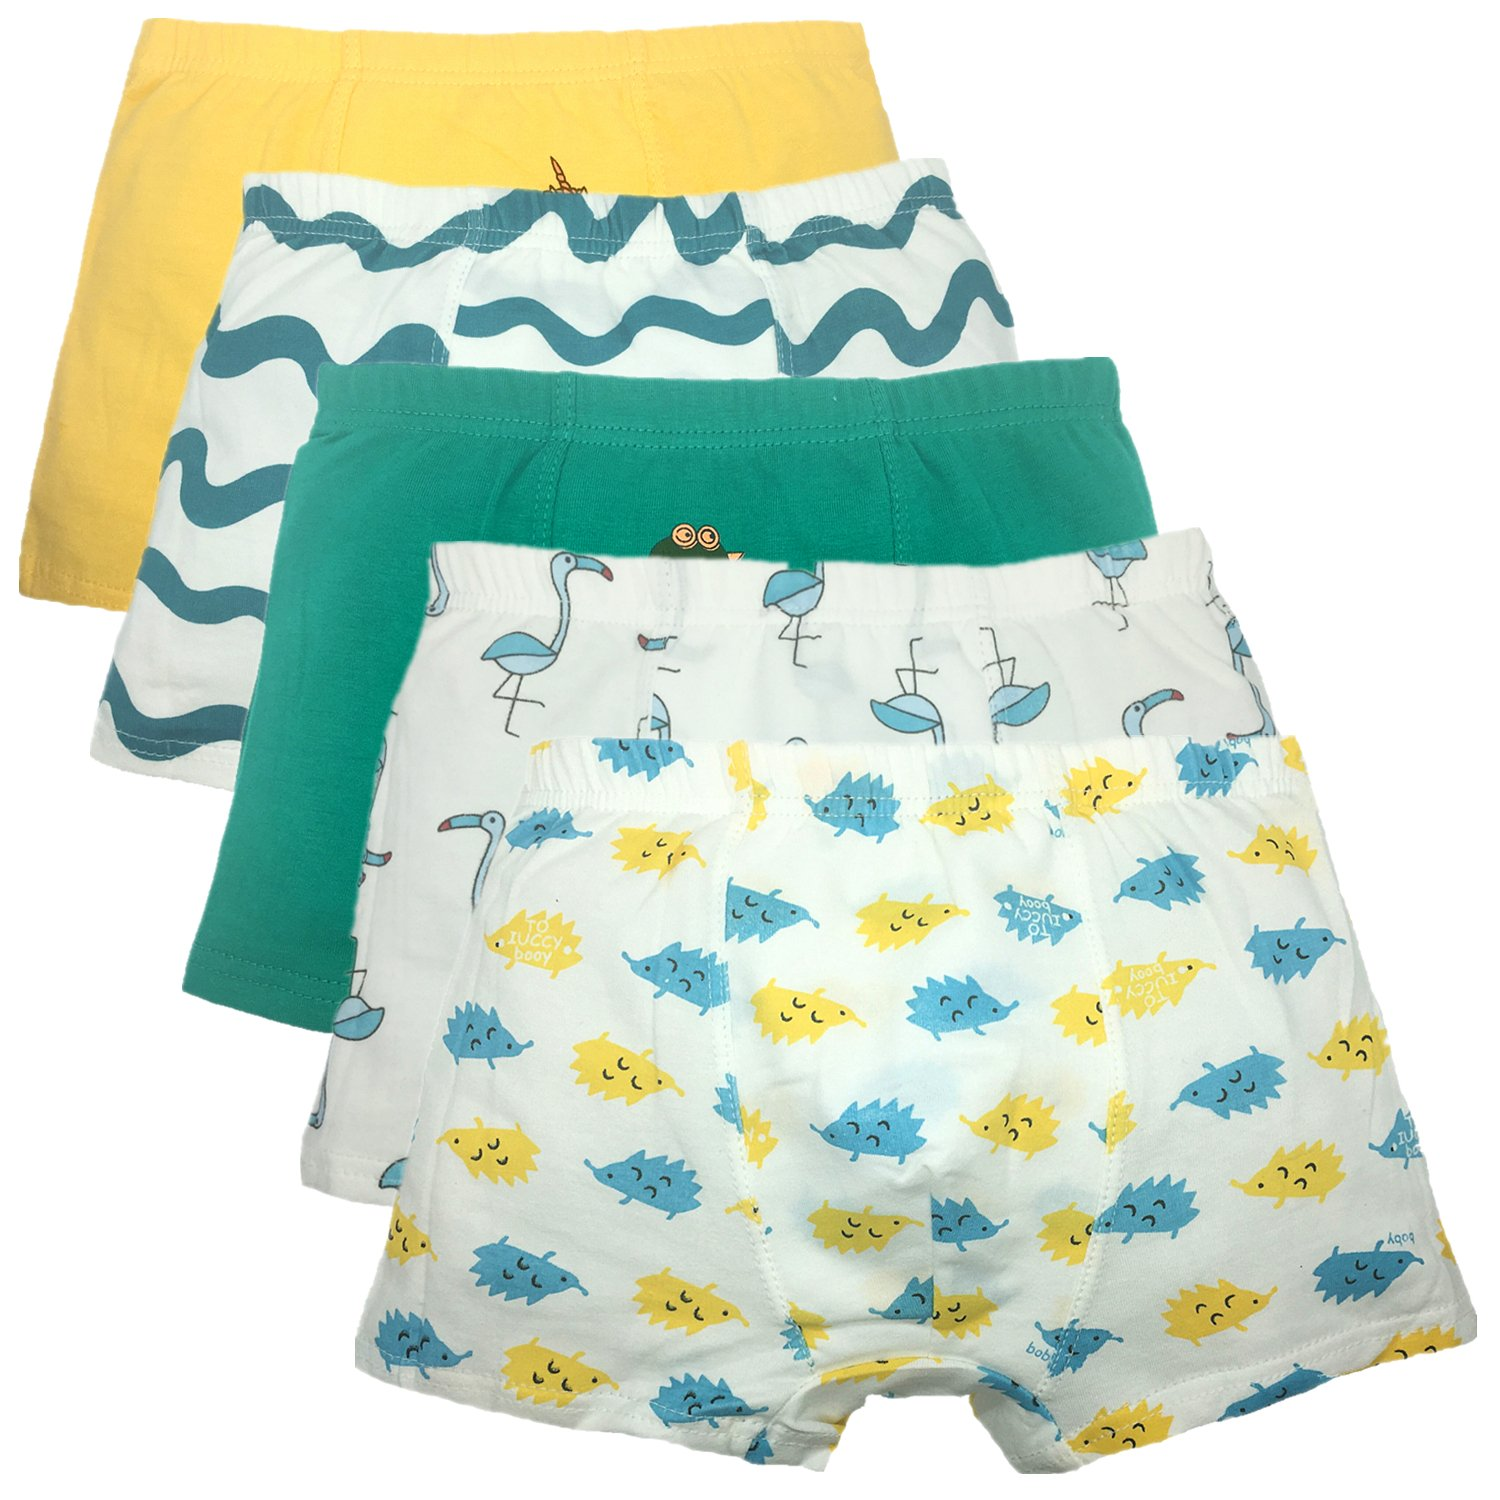 Boys Boxer Brief Comfort Soft Boxers for Kids Cotton Underwear 5 Pack (2-4 Years, A)